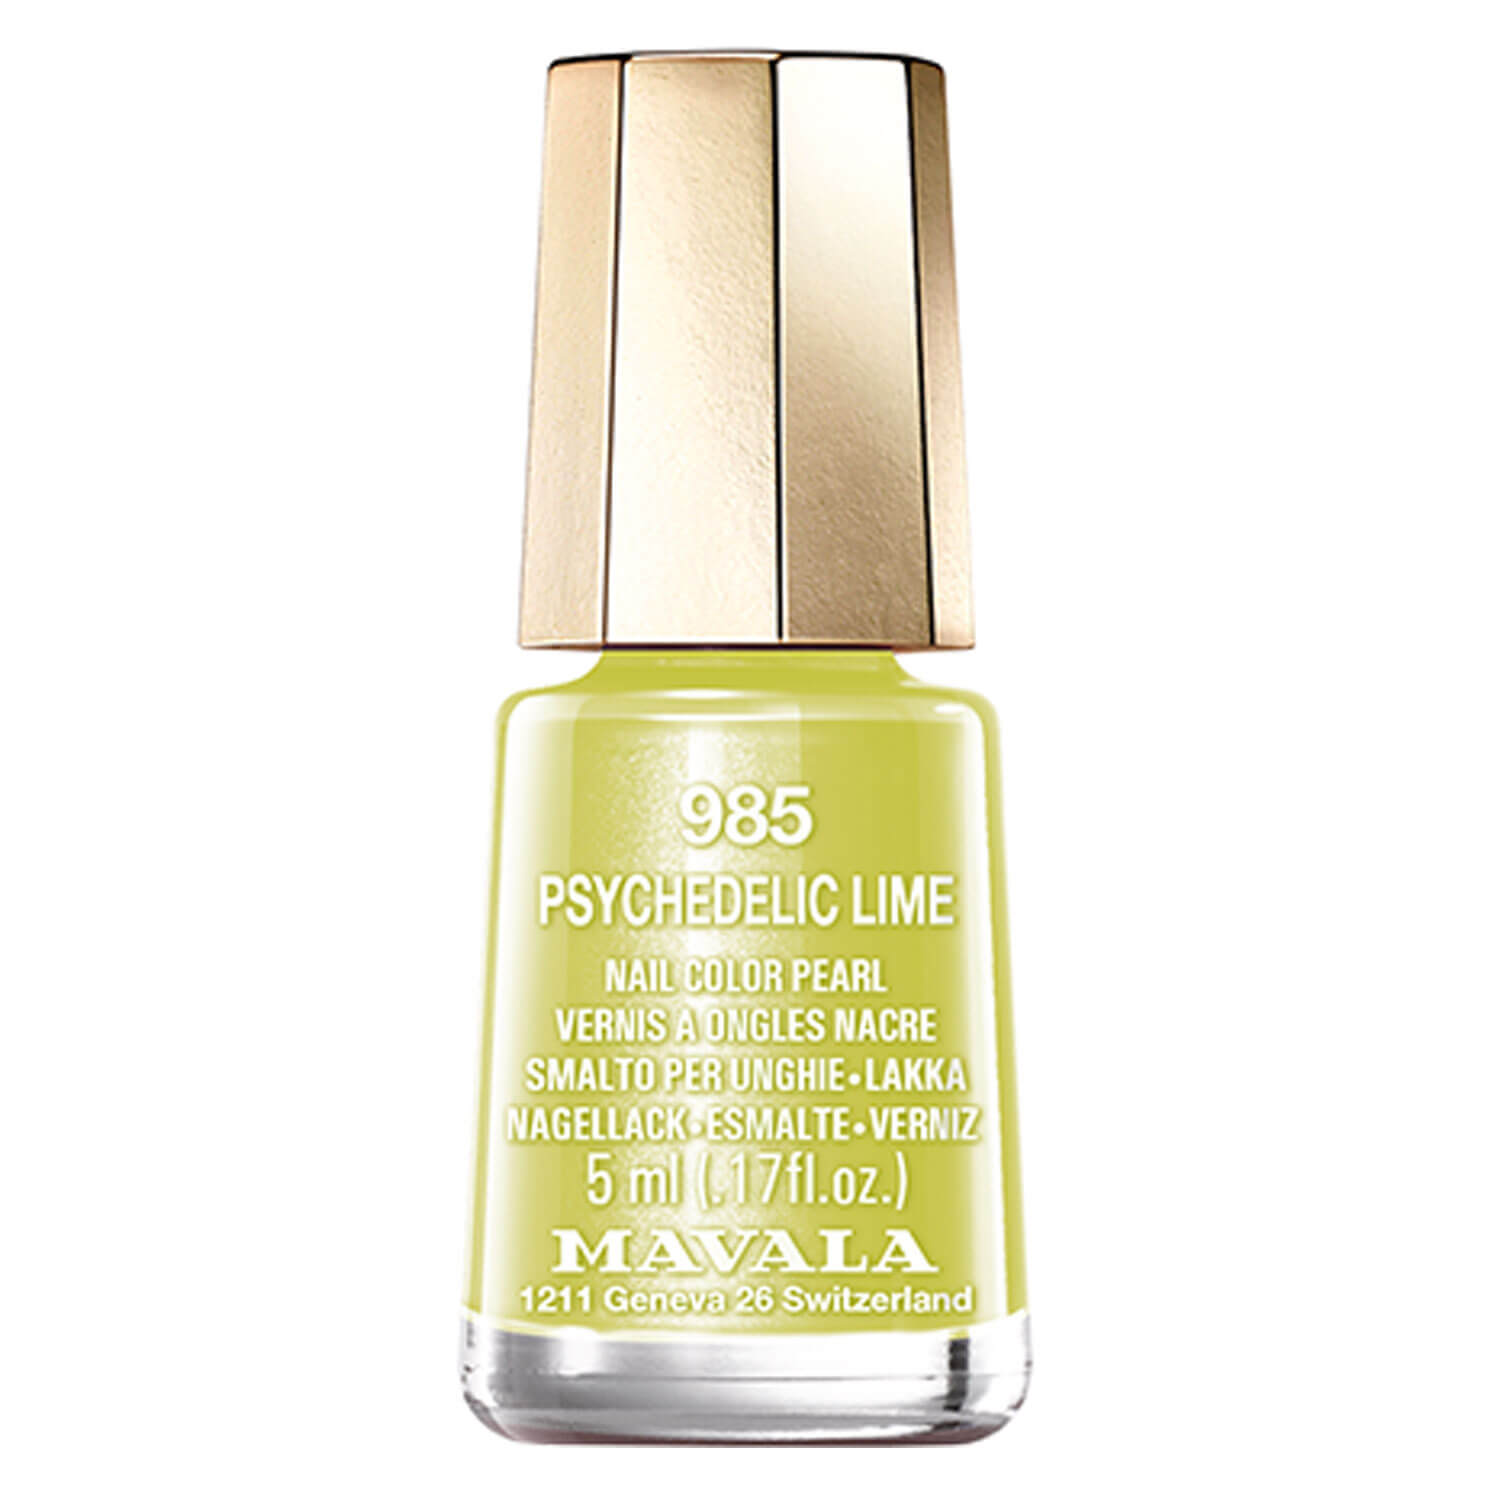 Dash & Splash Color - Psychedelic Lime 985 Limited Edition - 5ml